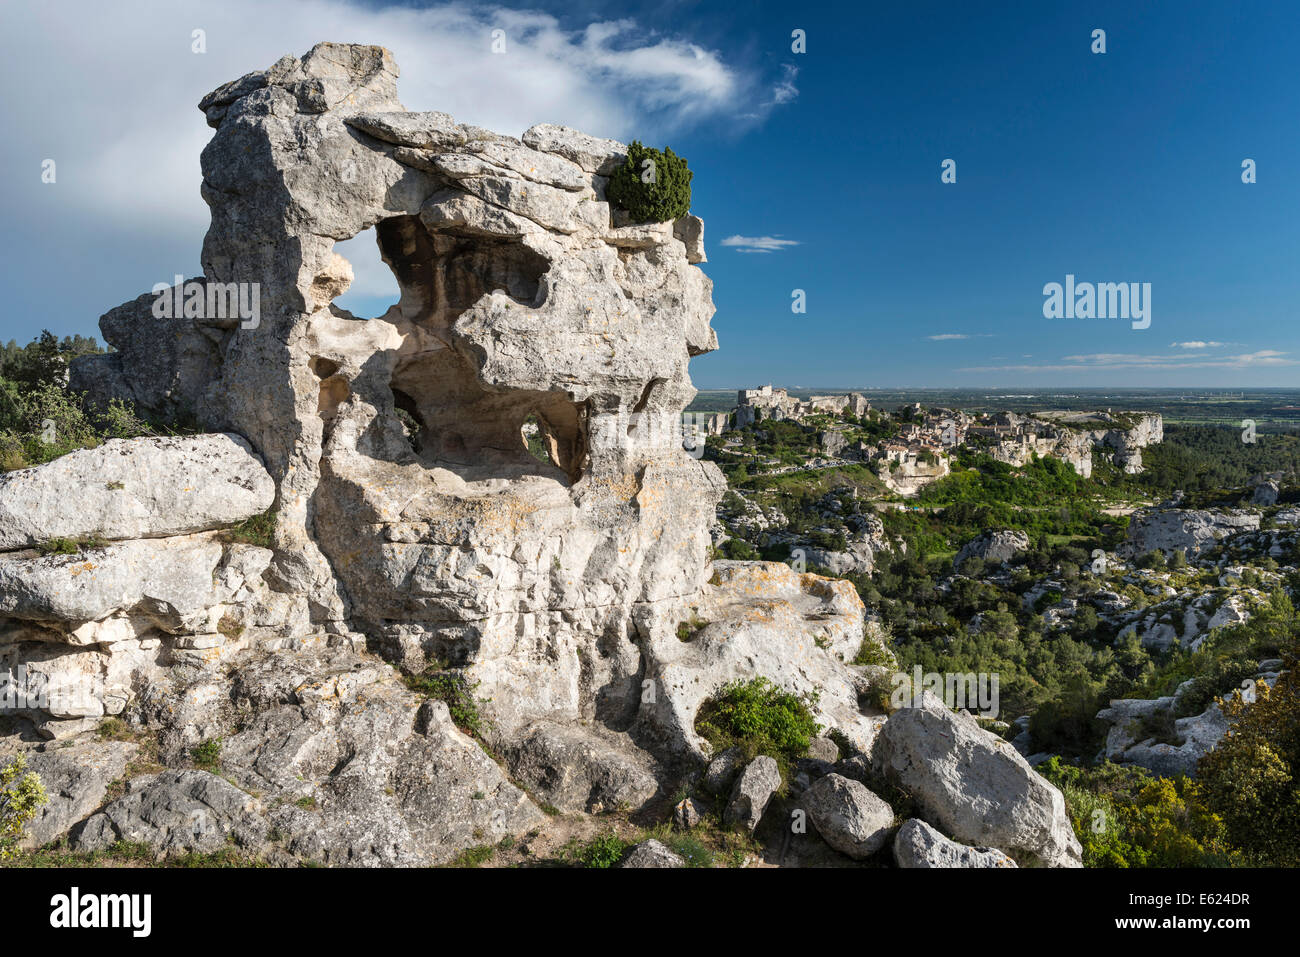 Rock formation in the Regional Natural Park of the Alpilles, Les Baux-de-Provence with castle ruins at the back - Stock Image